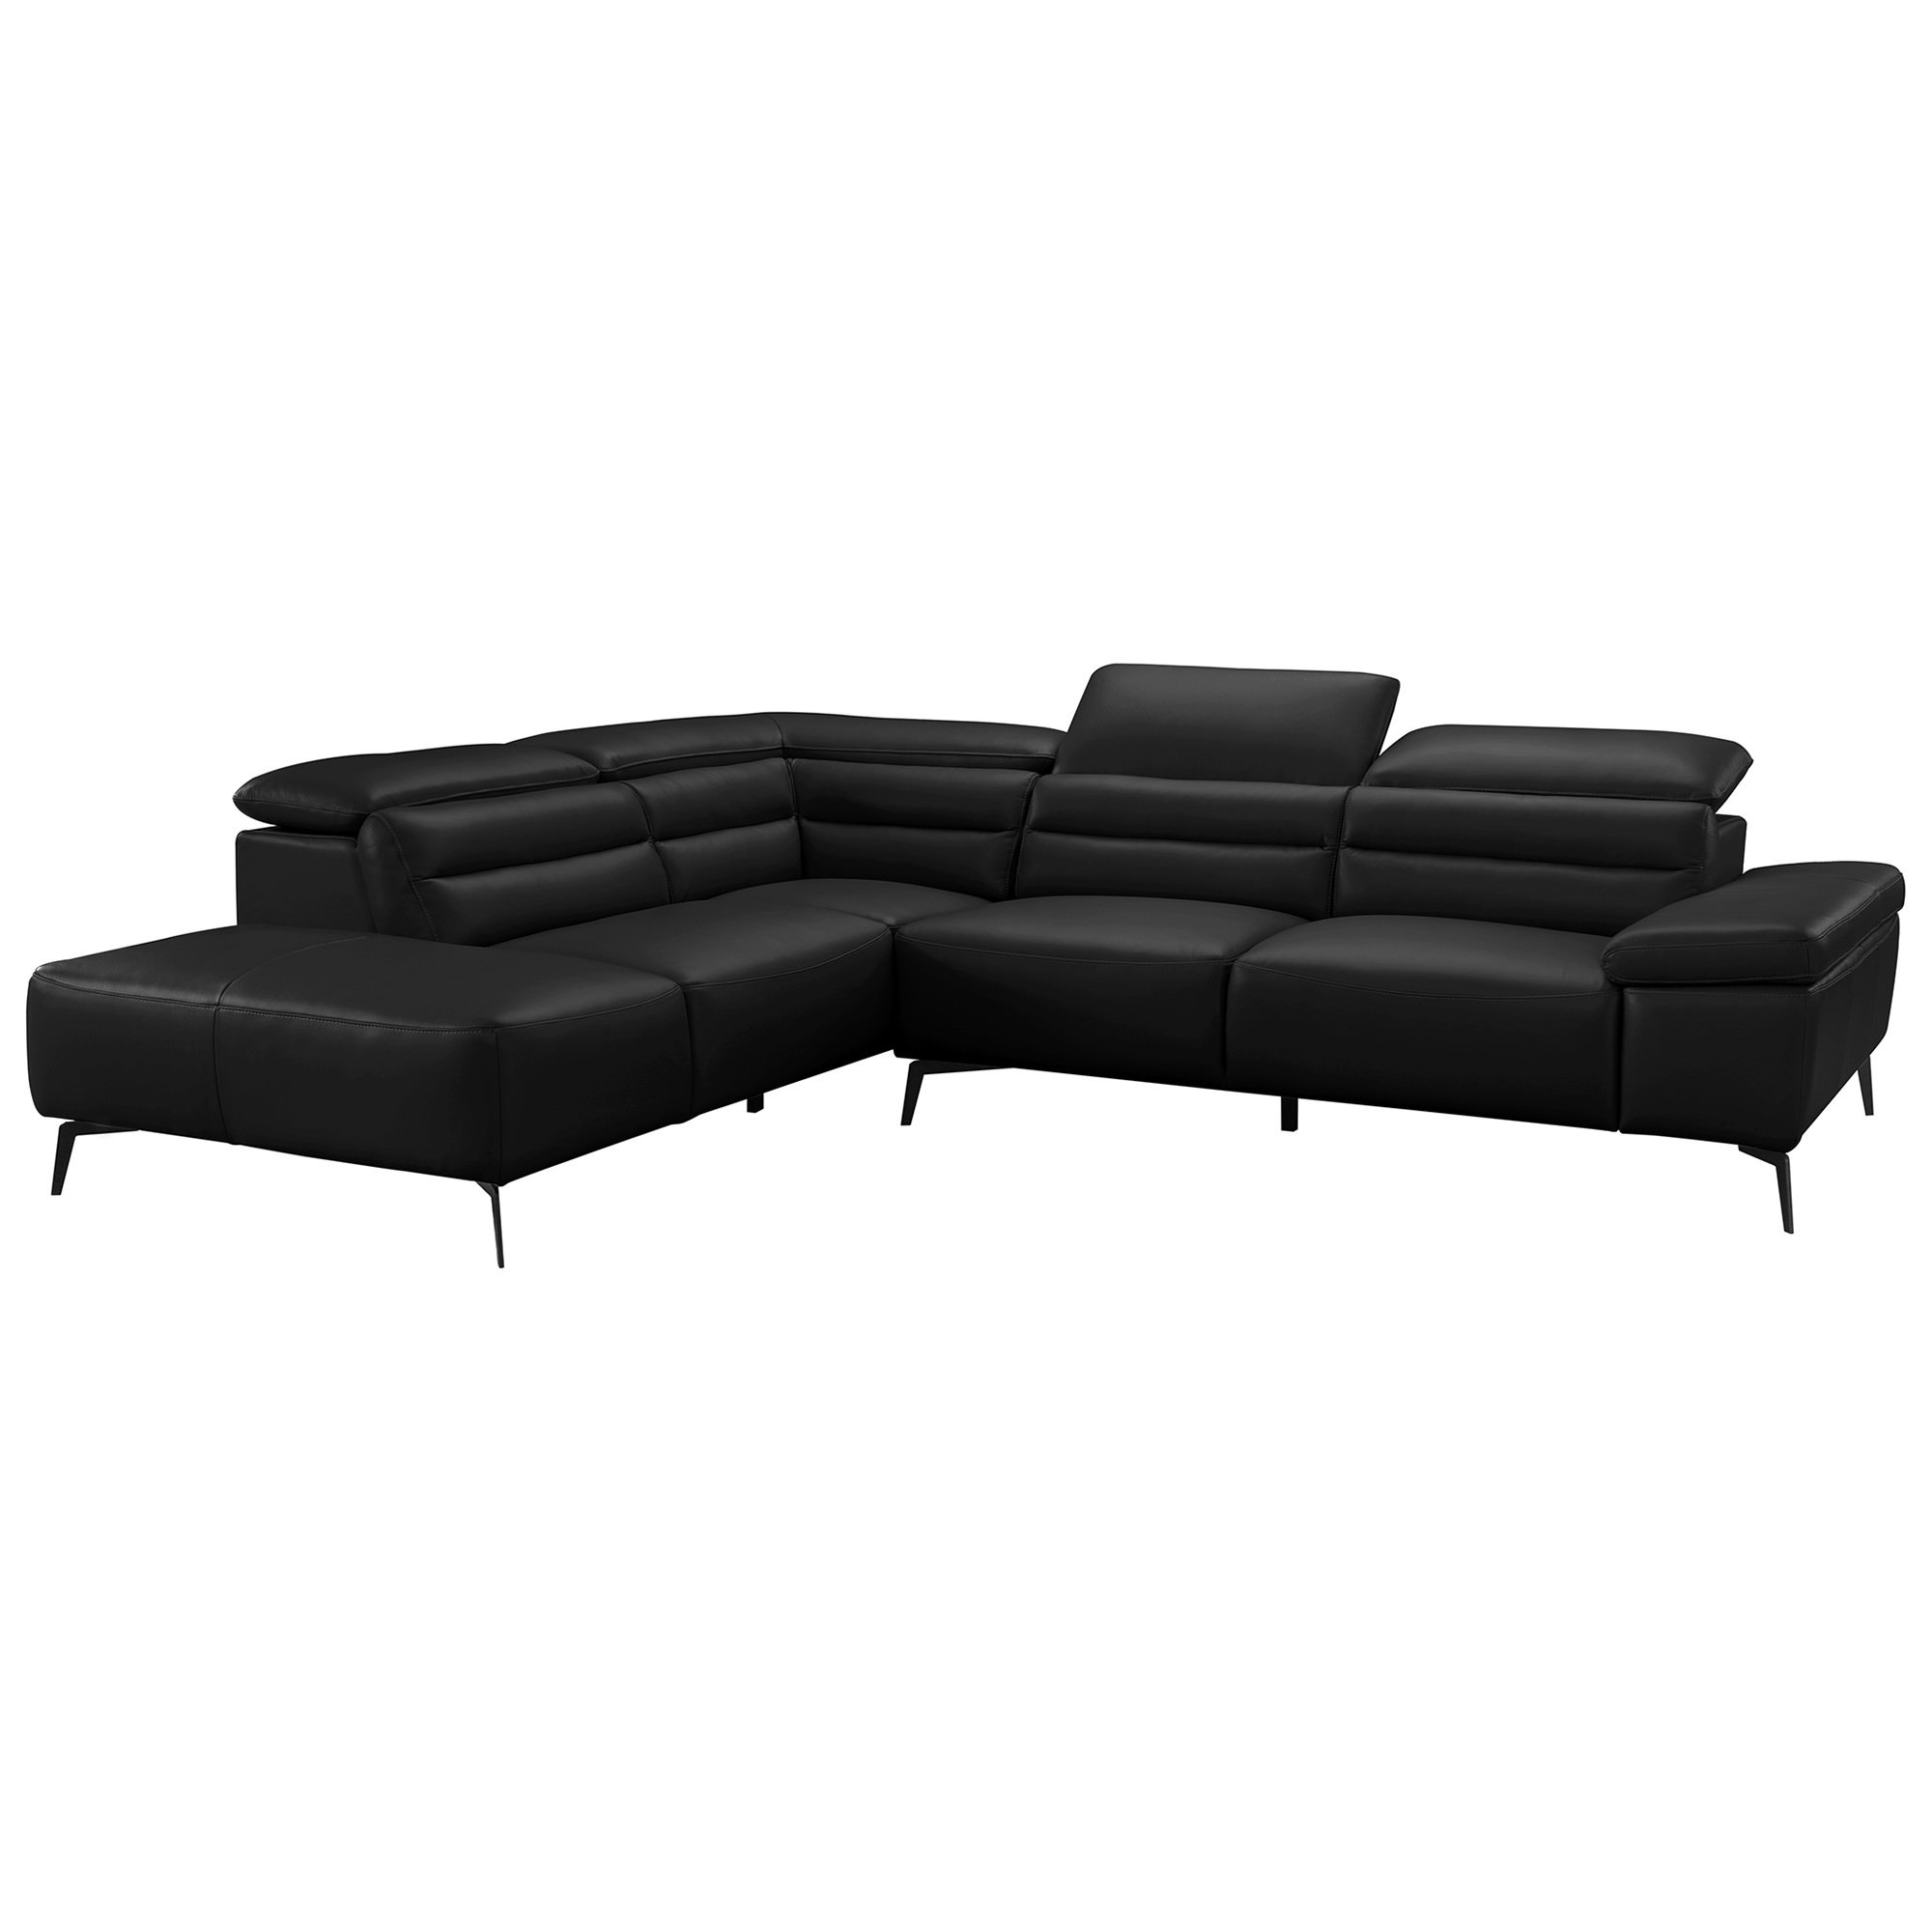 Casape Leather Corner Sofa, 3 Seater with Left Hand Facing Terminal, Black